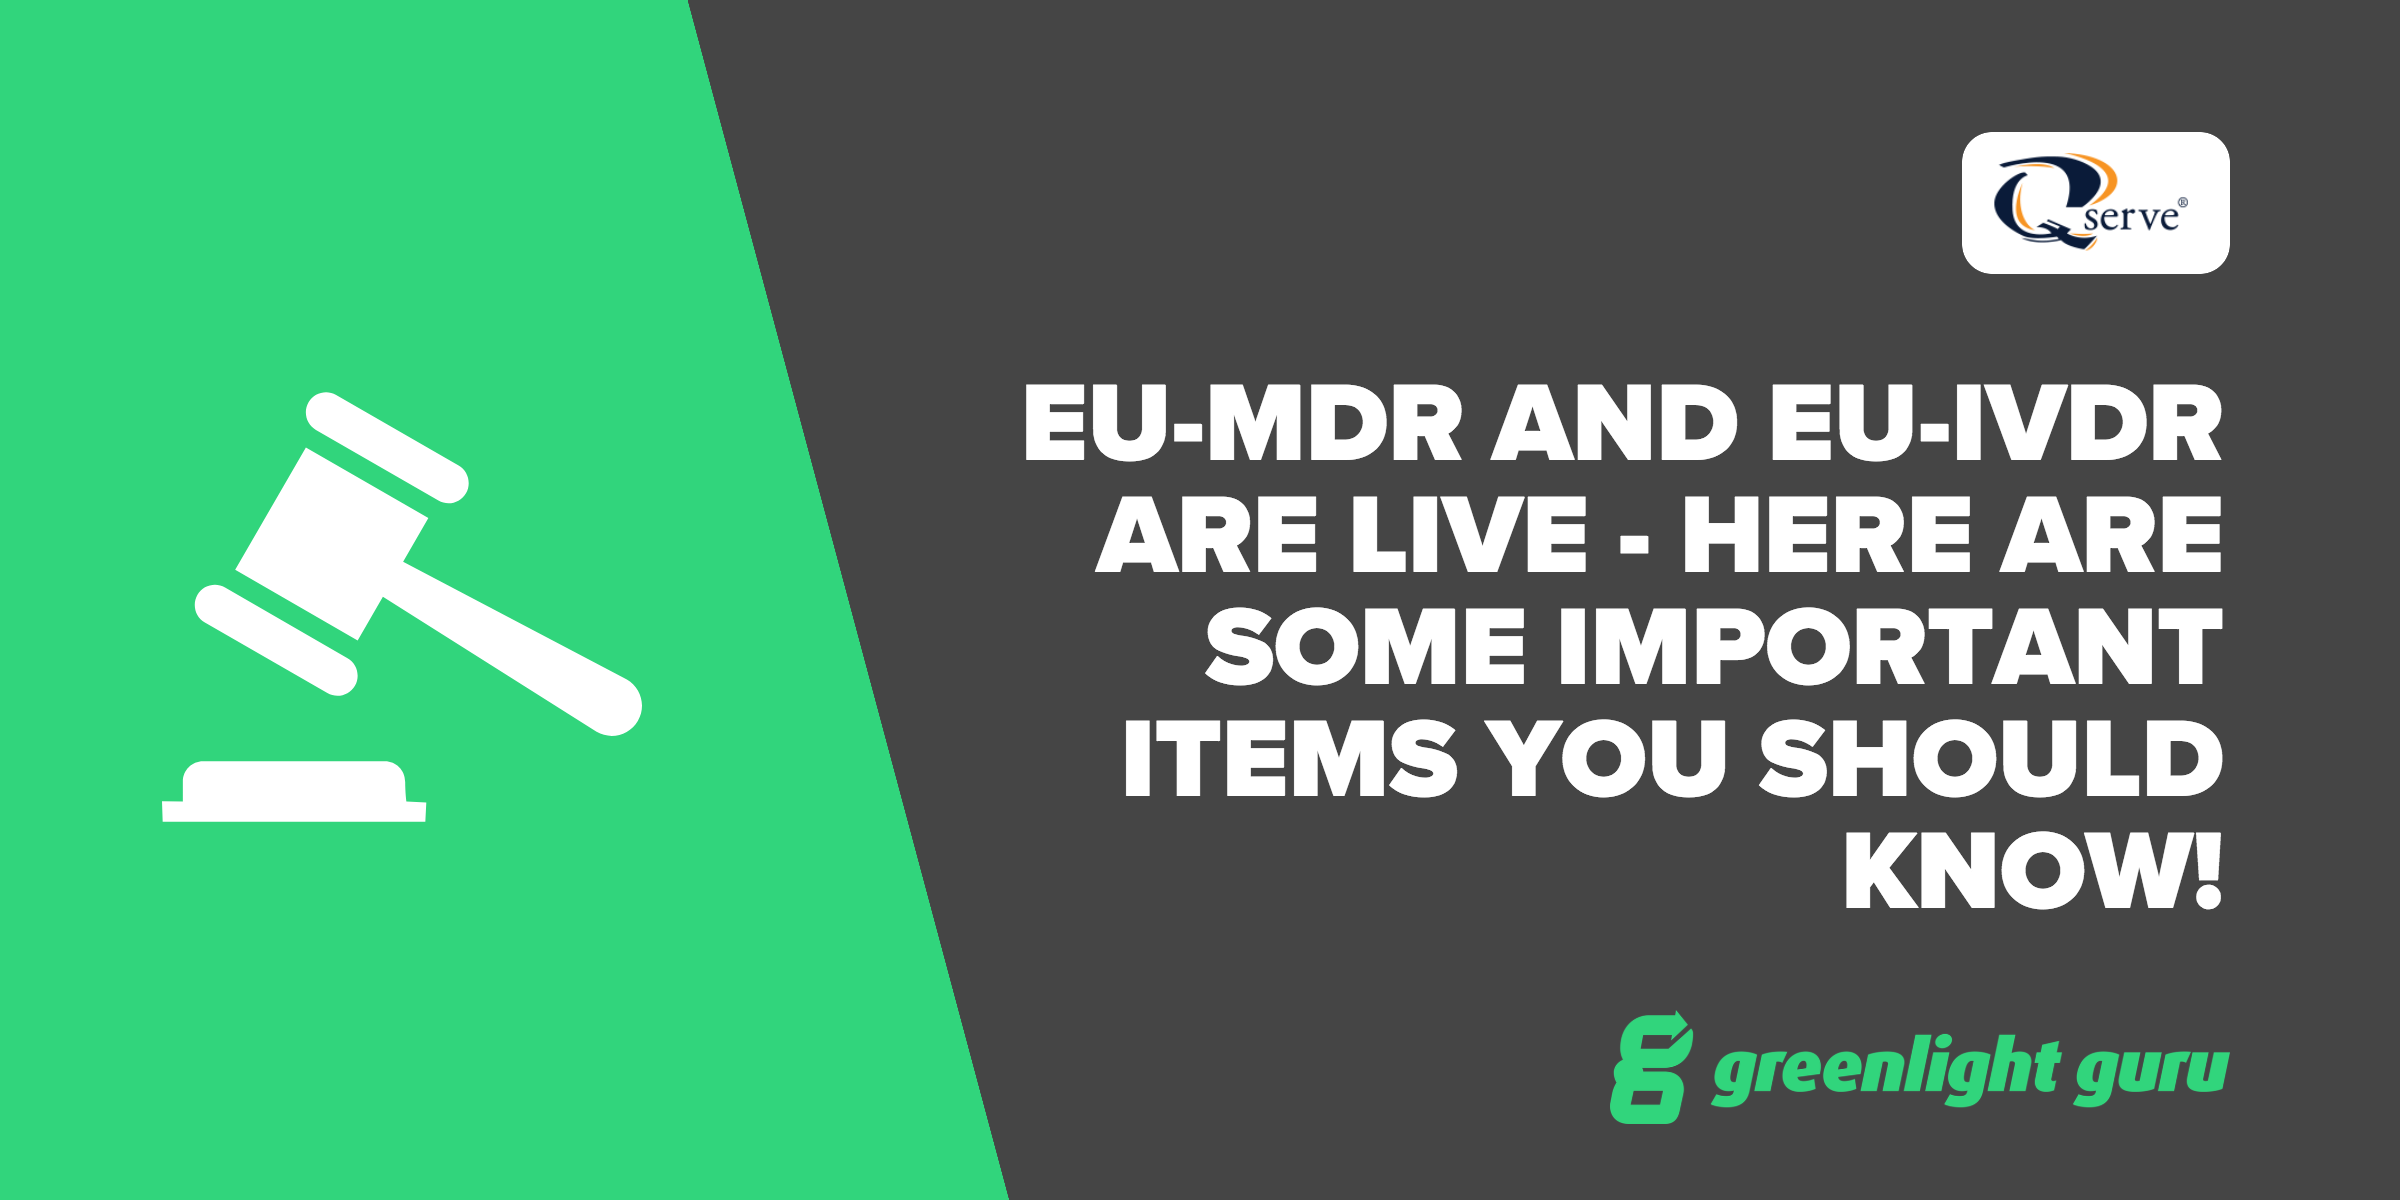 EU-MDR and EU-IVDR are live - Here are some important items you should know! - Featured Image